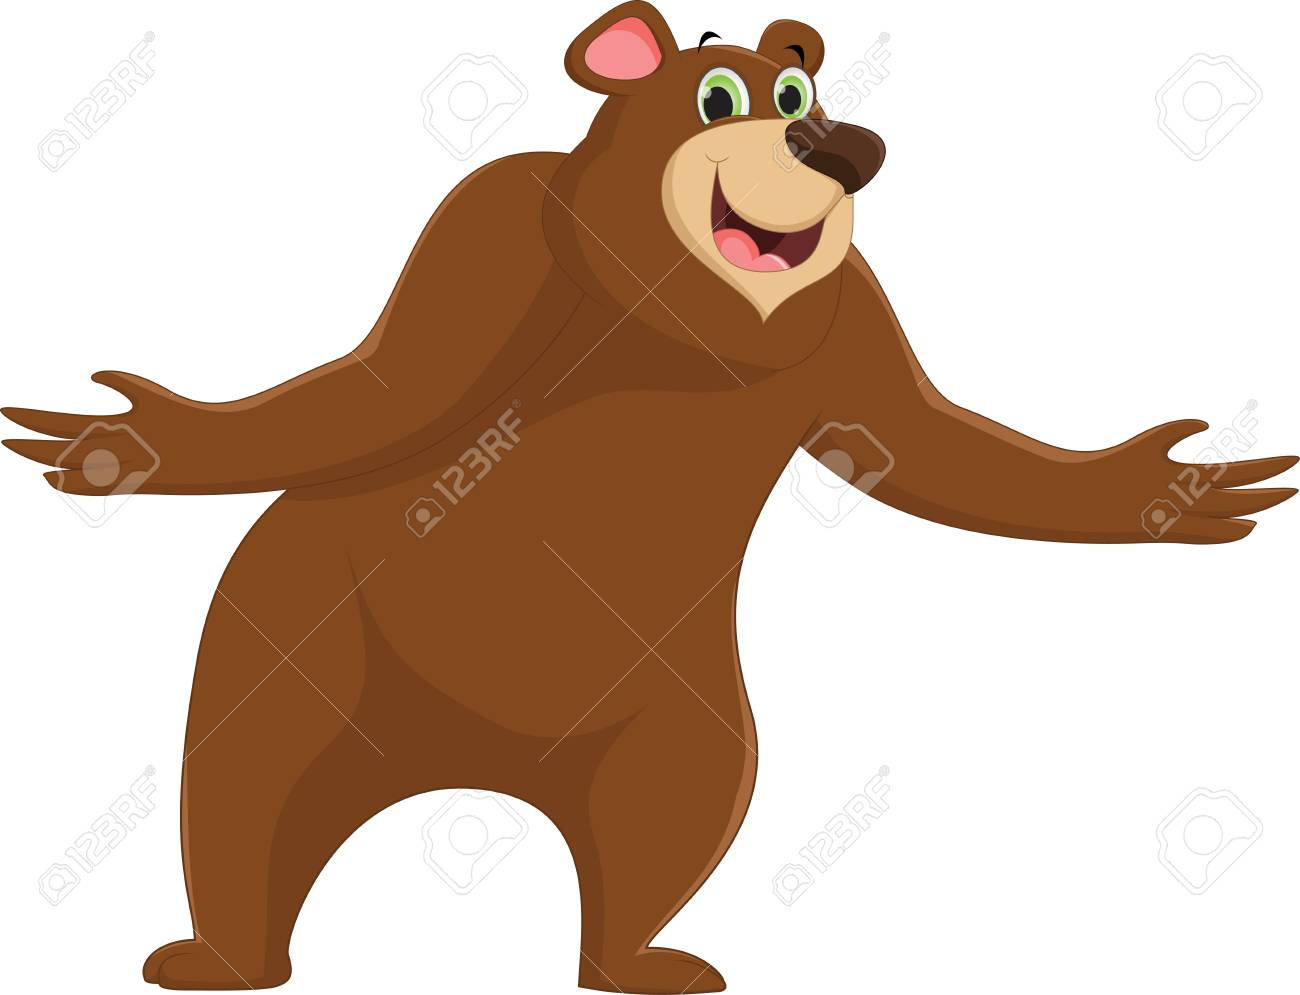 Cartoon happy brown bear waving hand.